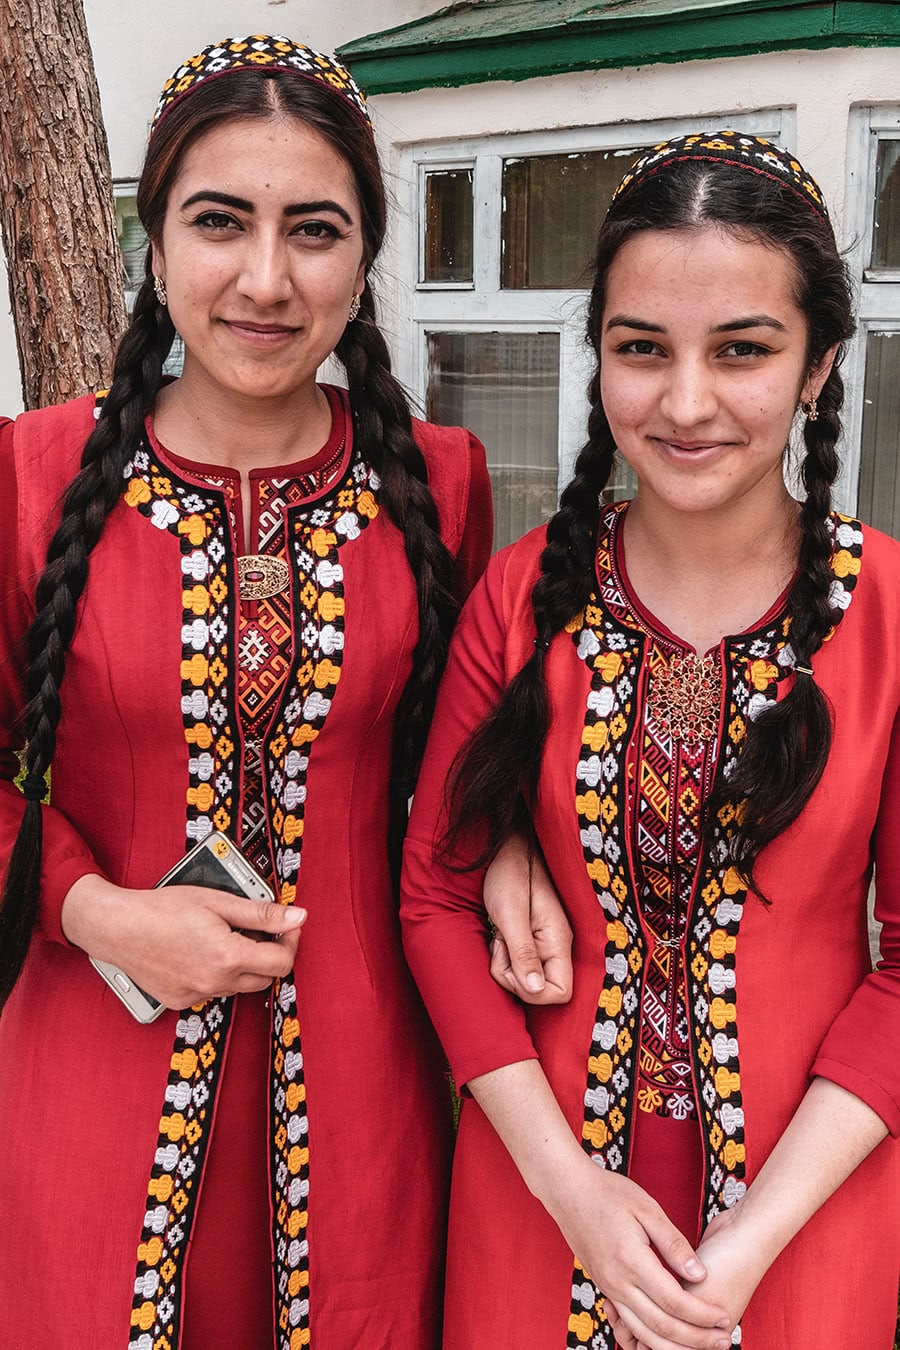 Two female students wearing traditional Turkmen dress.